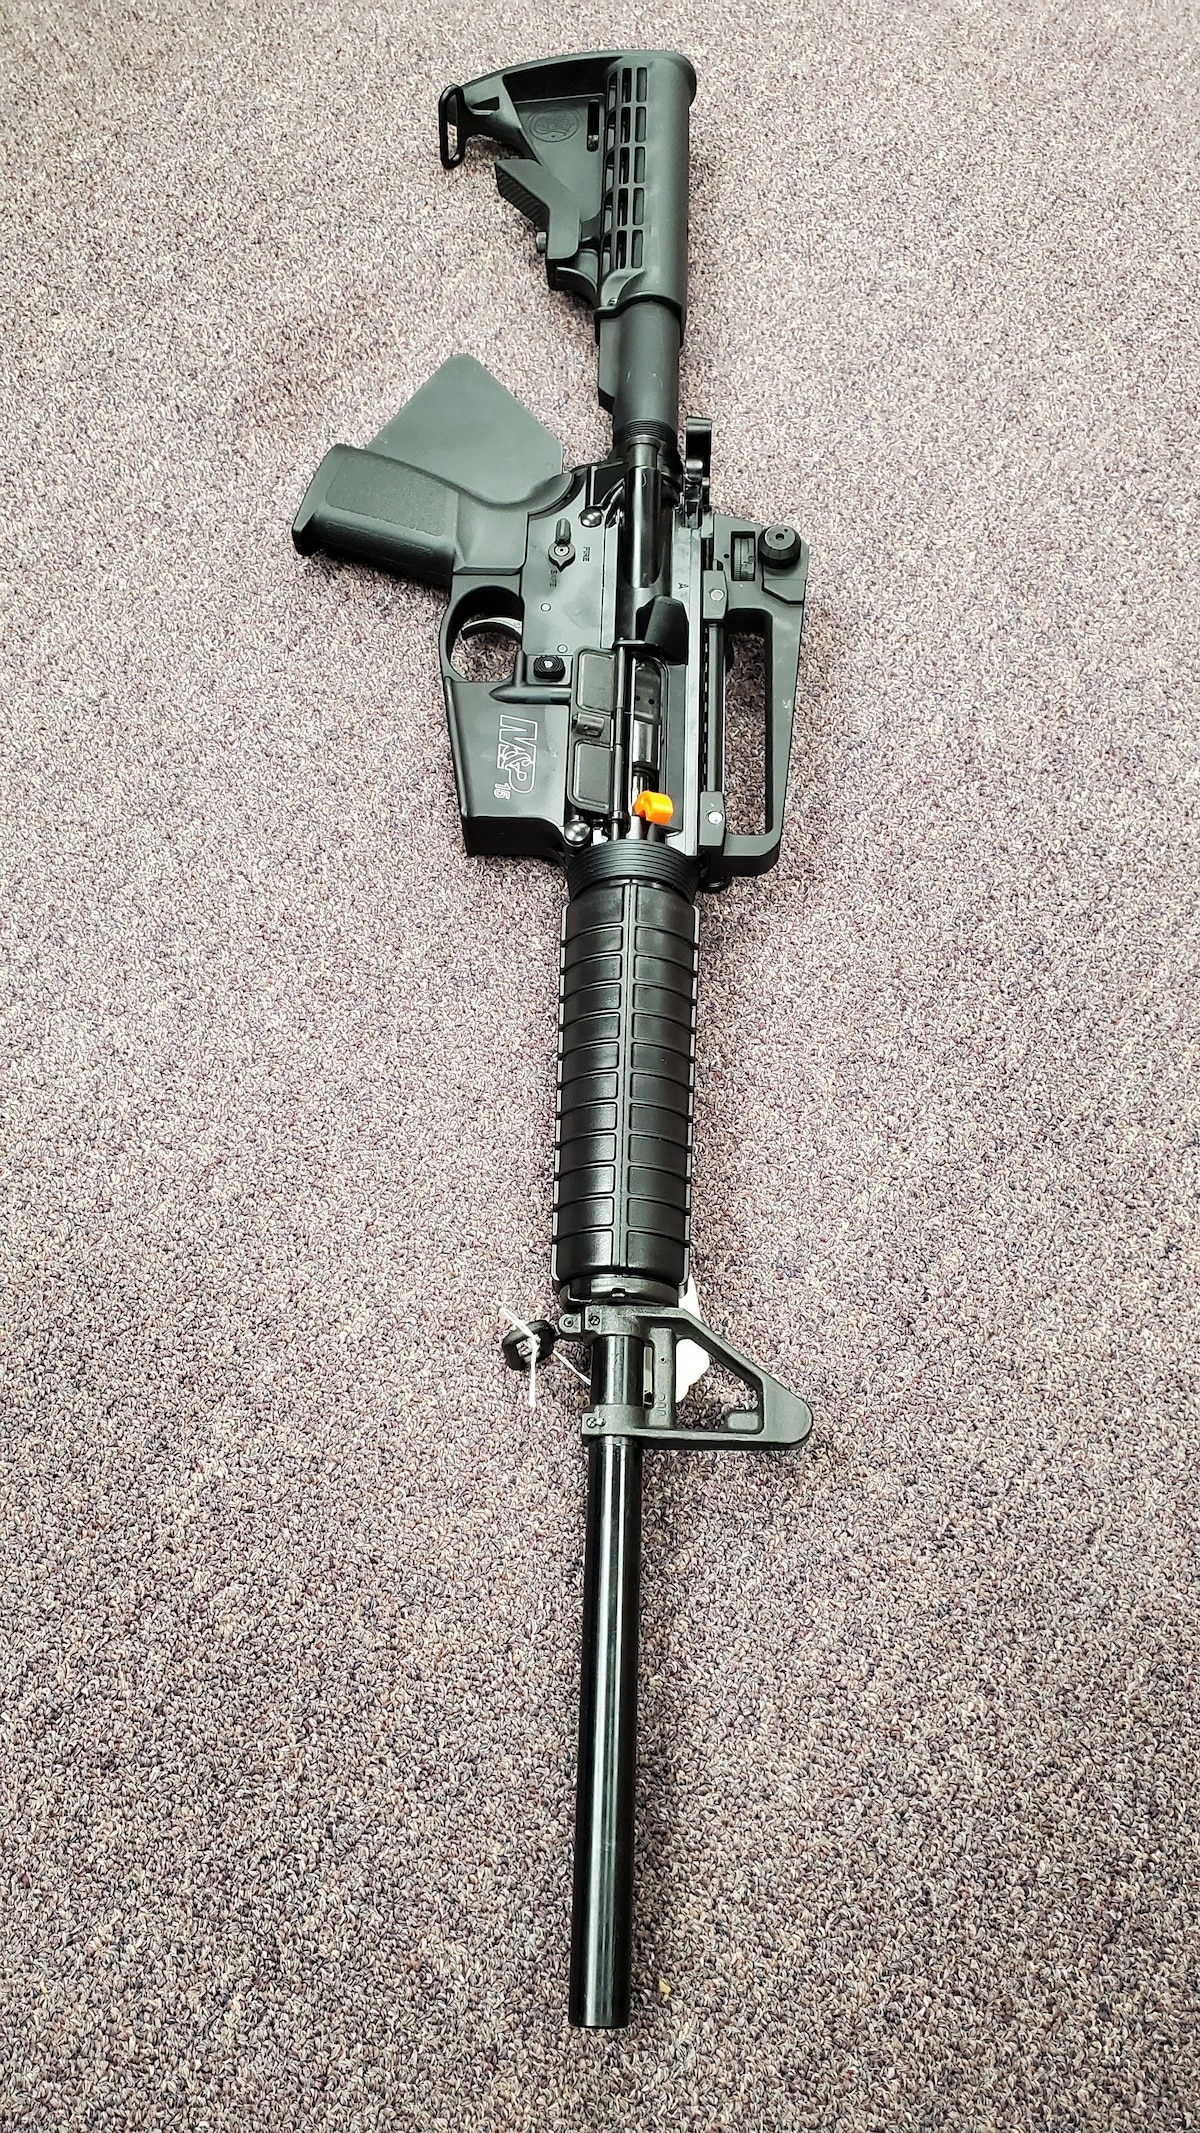 SMITH AND WESSON SMITH & WESSON M&P15 SPORT II CA COMPLIANT